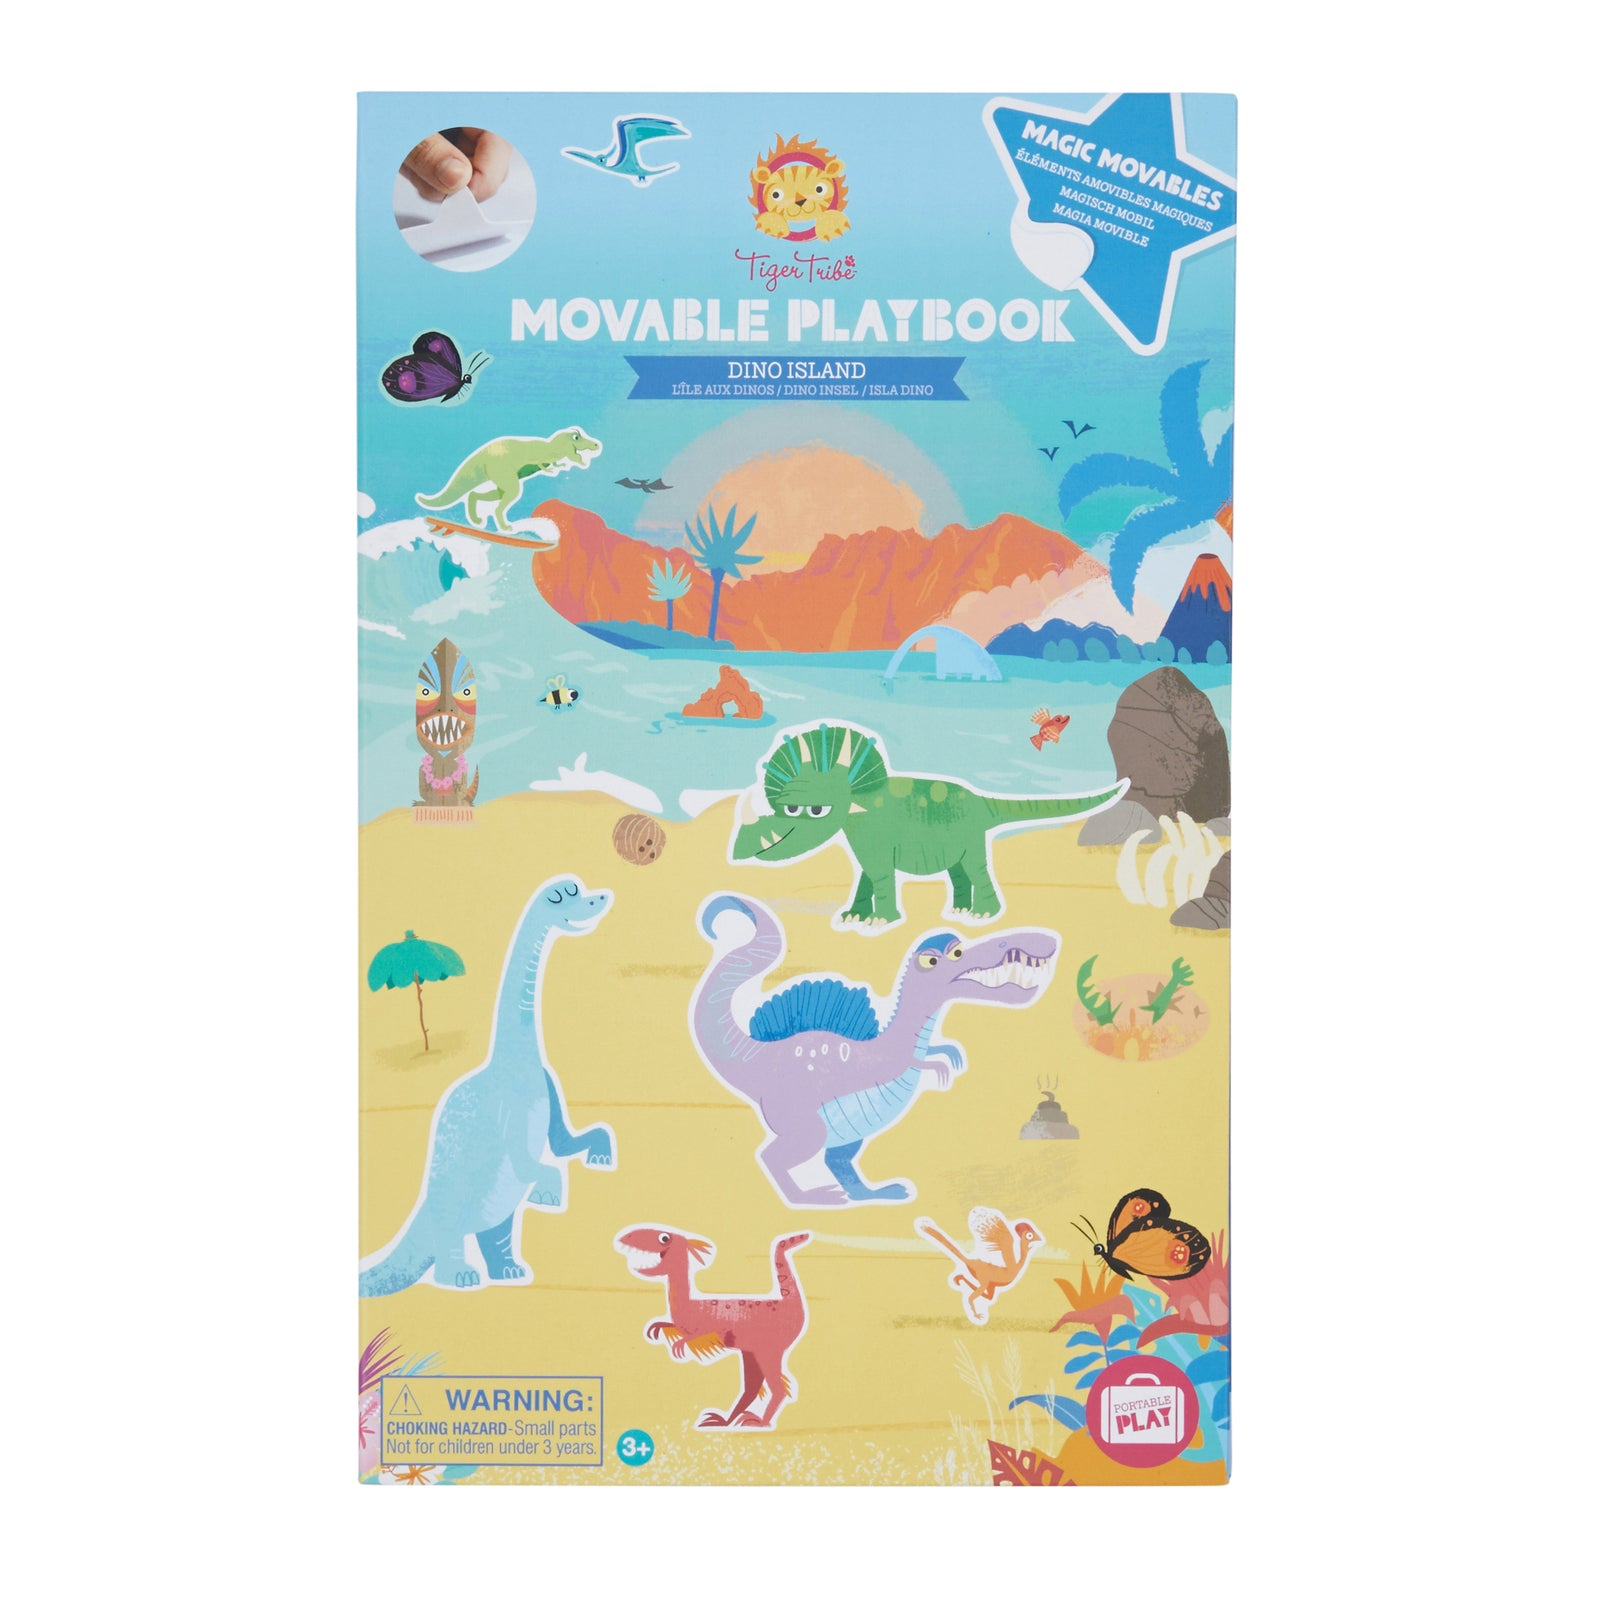 Moveable Playbook - Dino Island